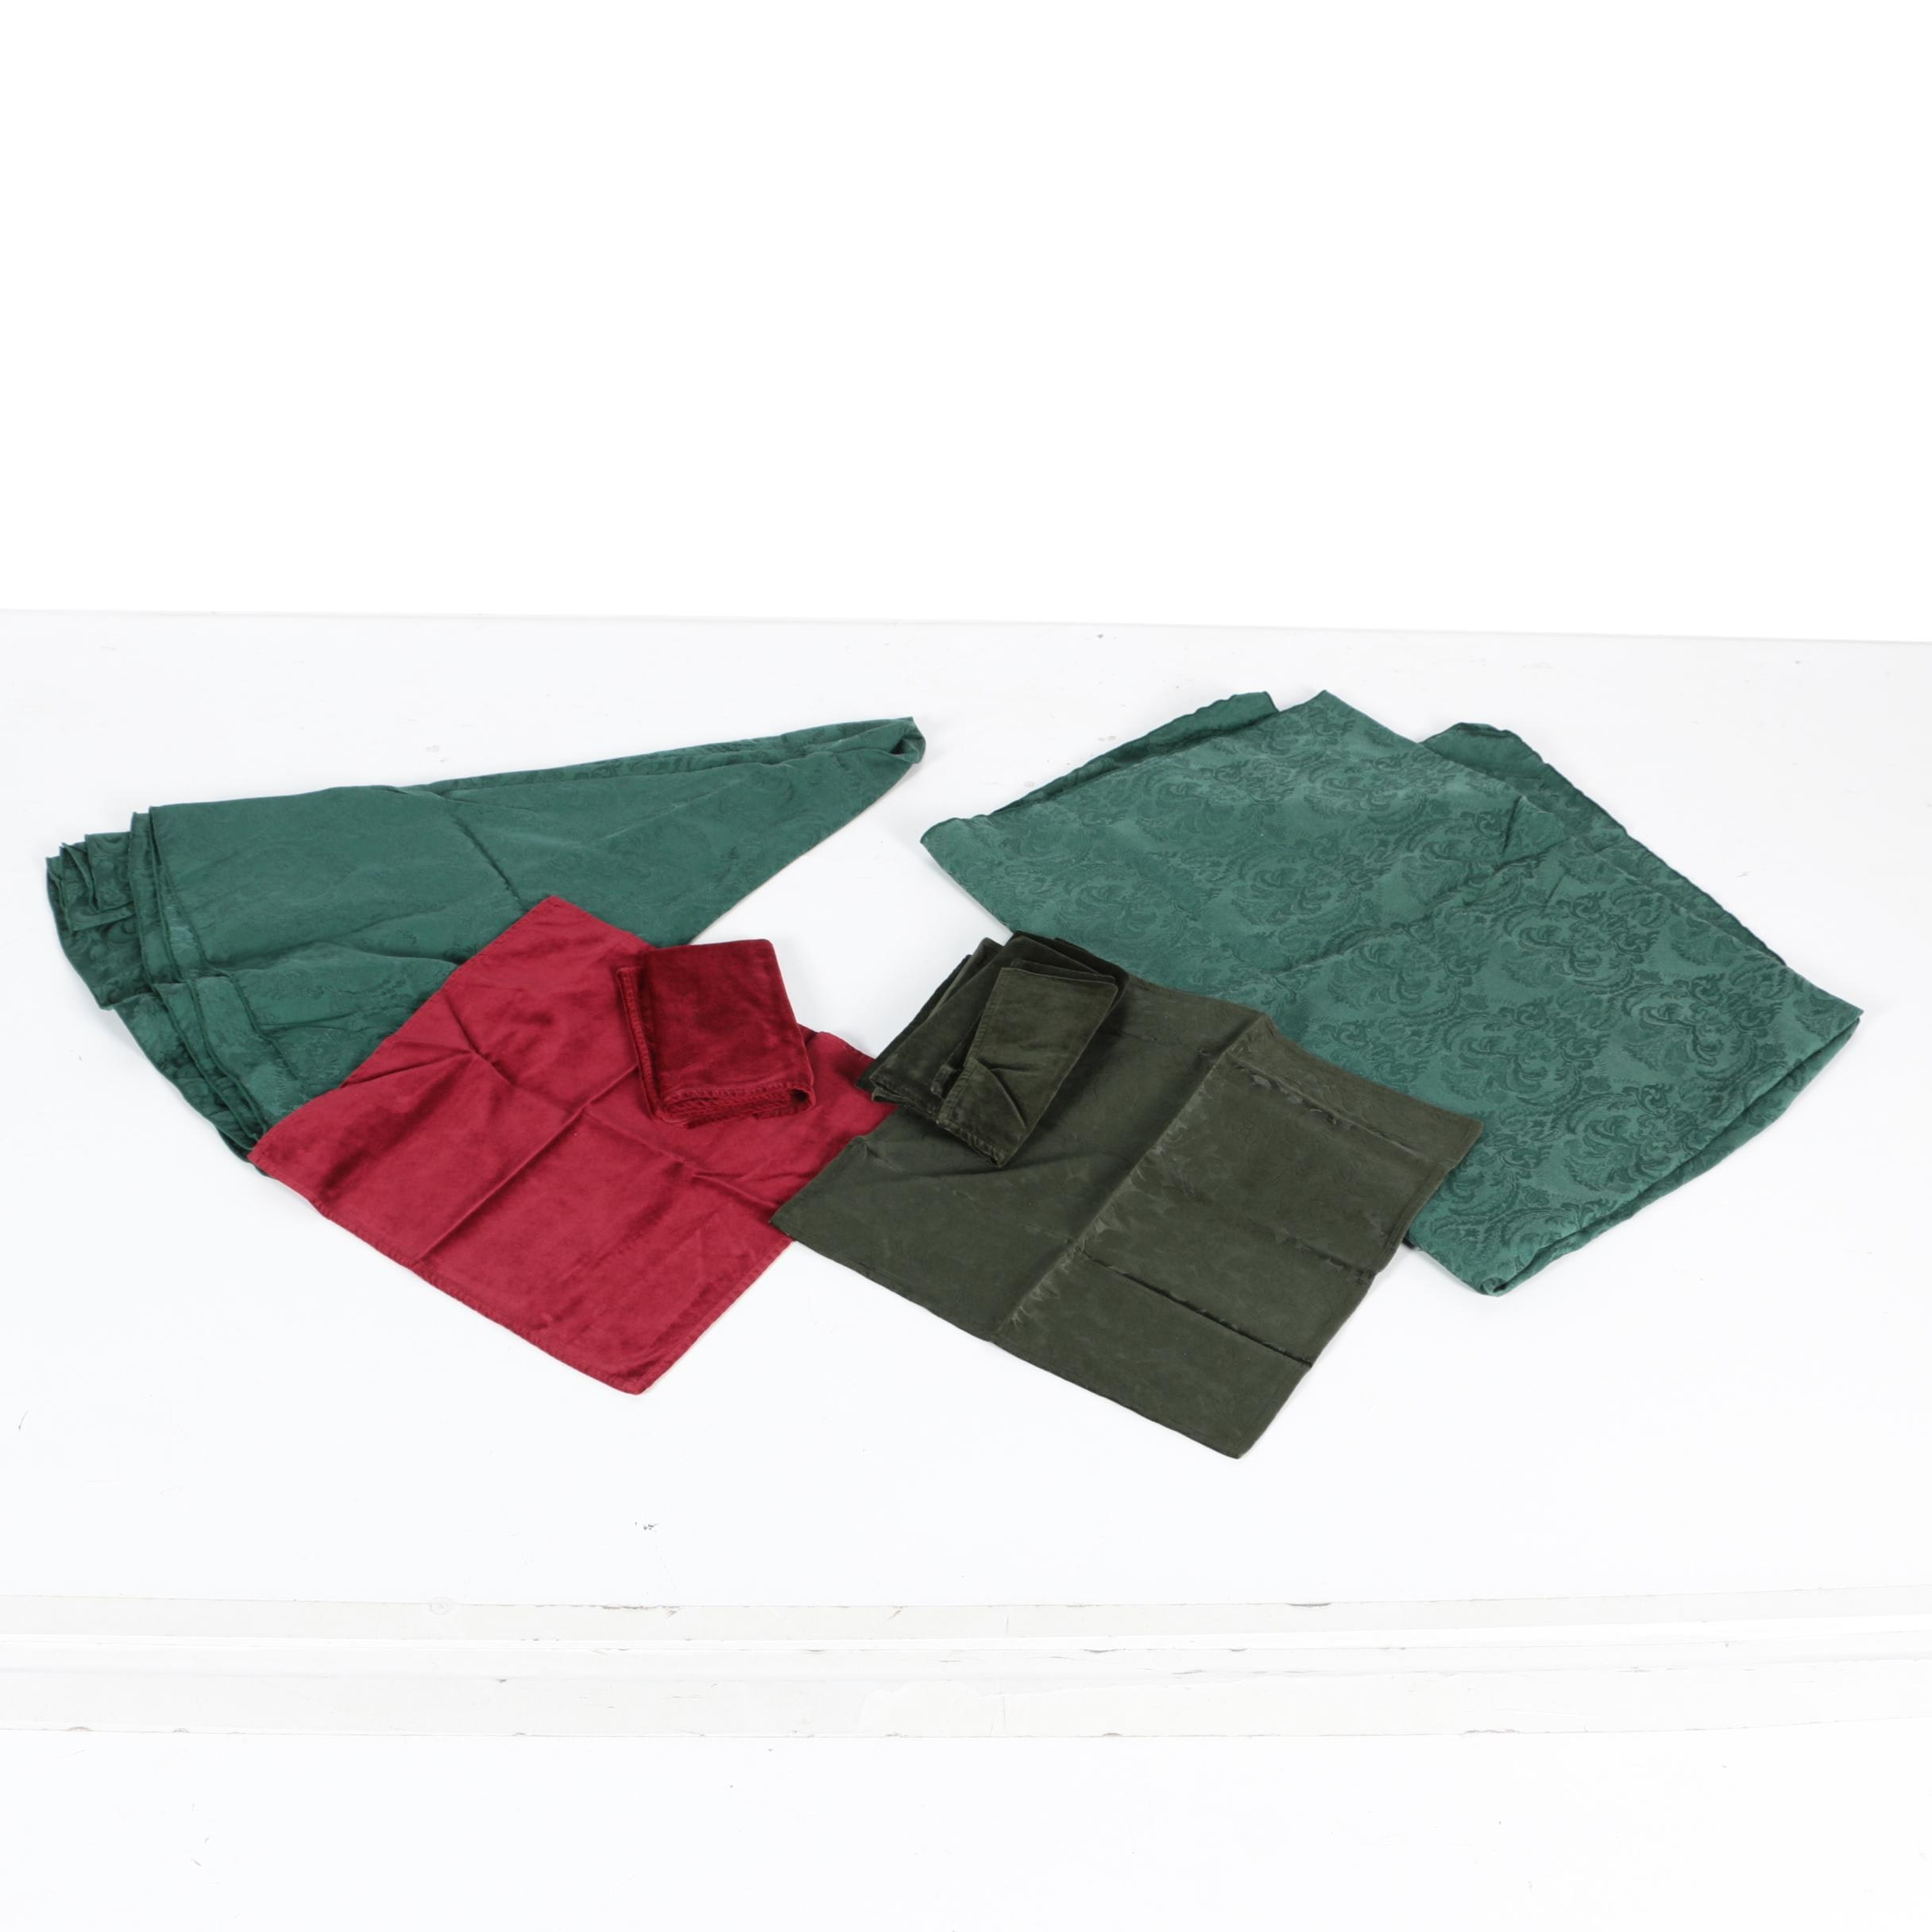 Collection of Red and Green Table Linens